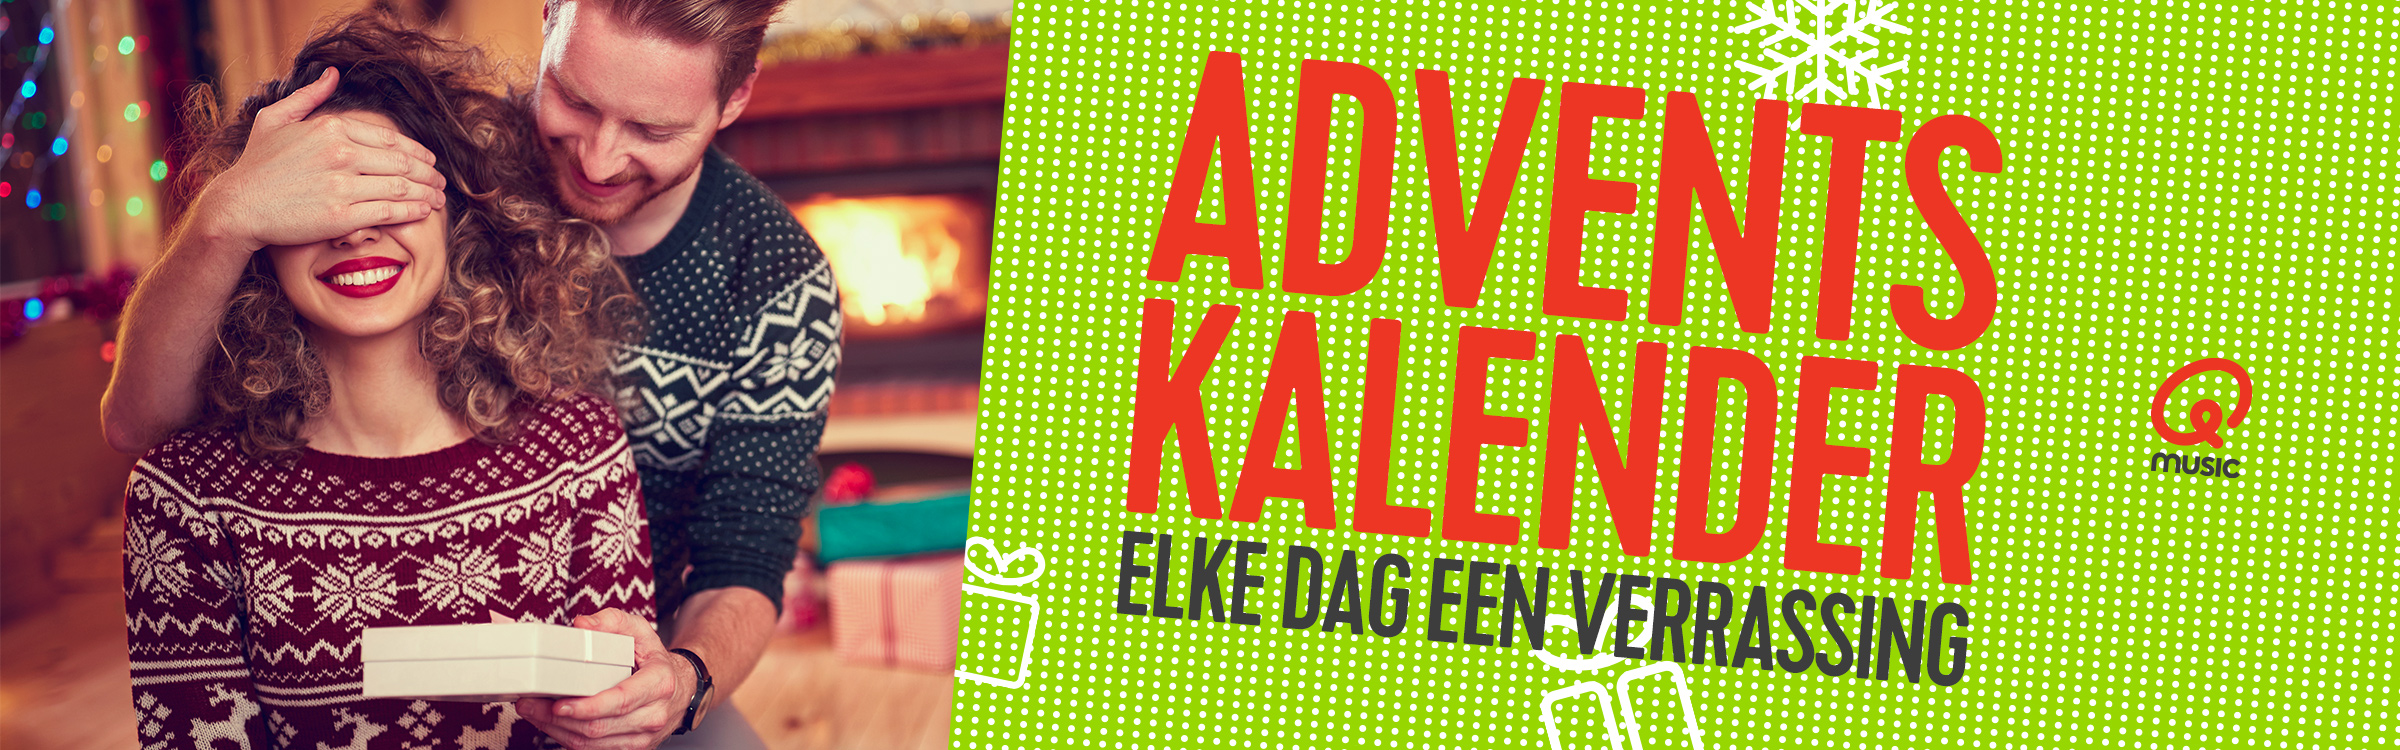 Qmusic actionheader adventkalender 1